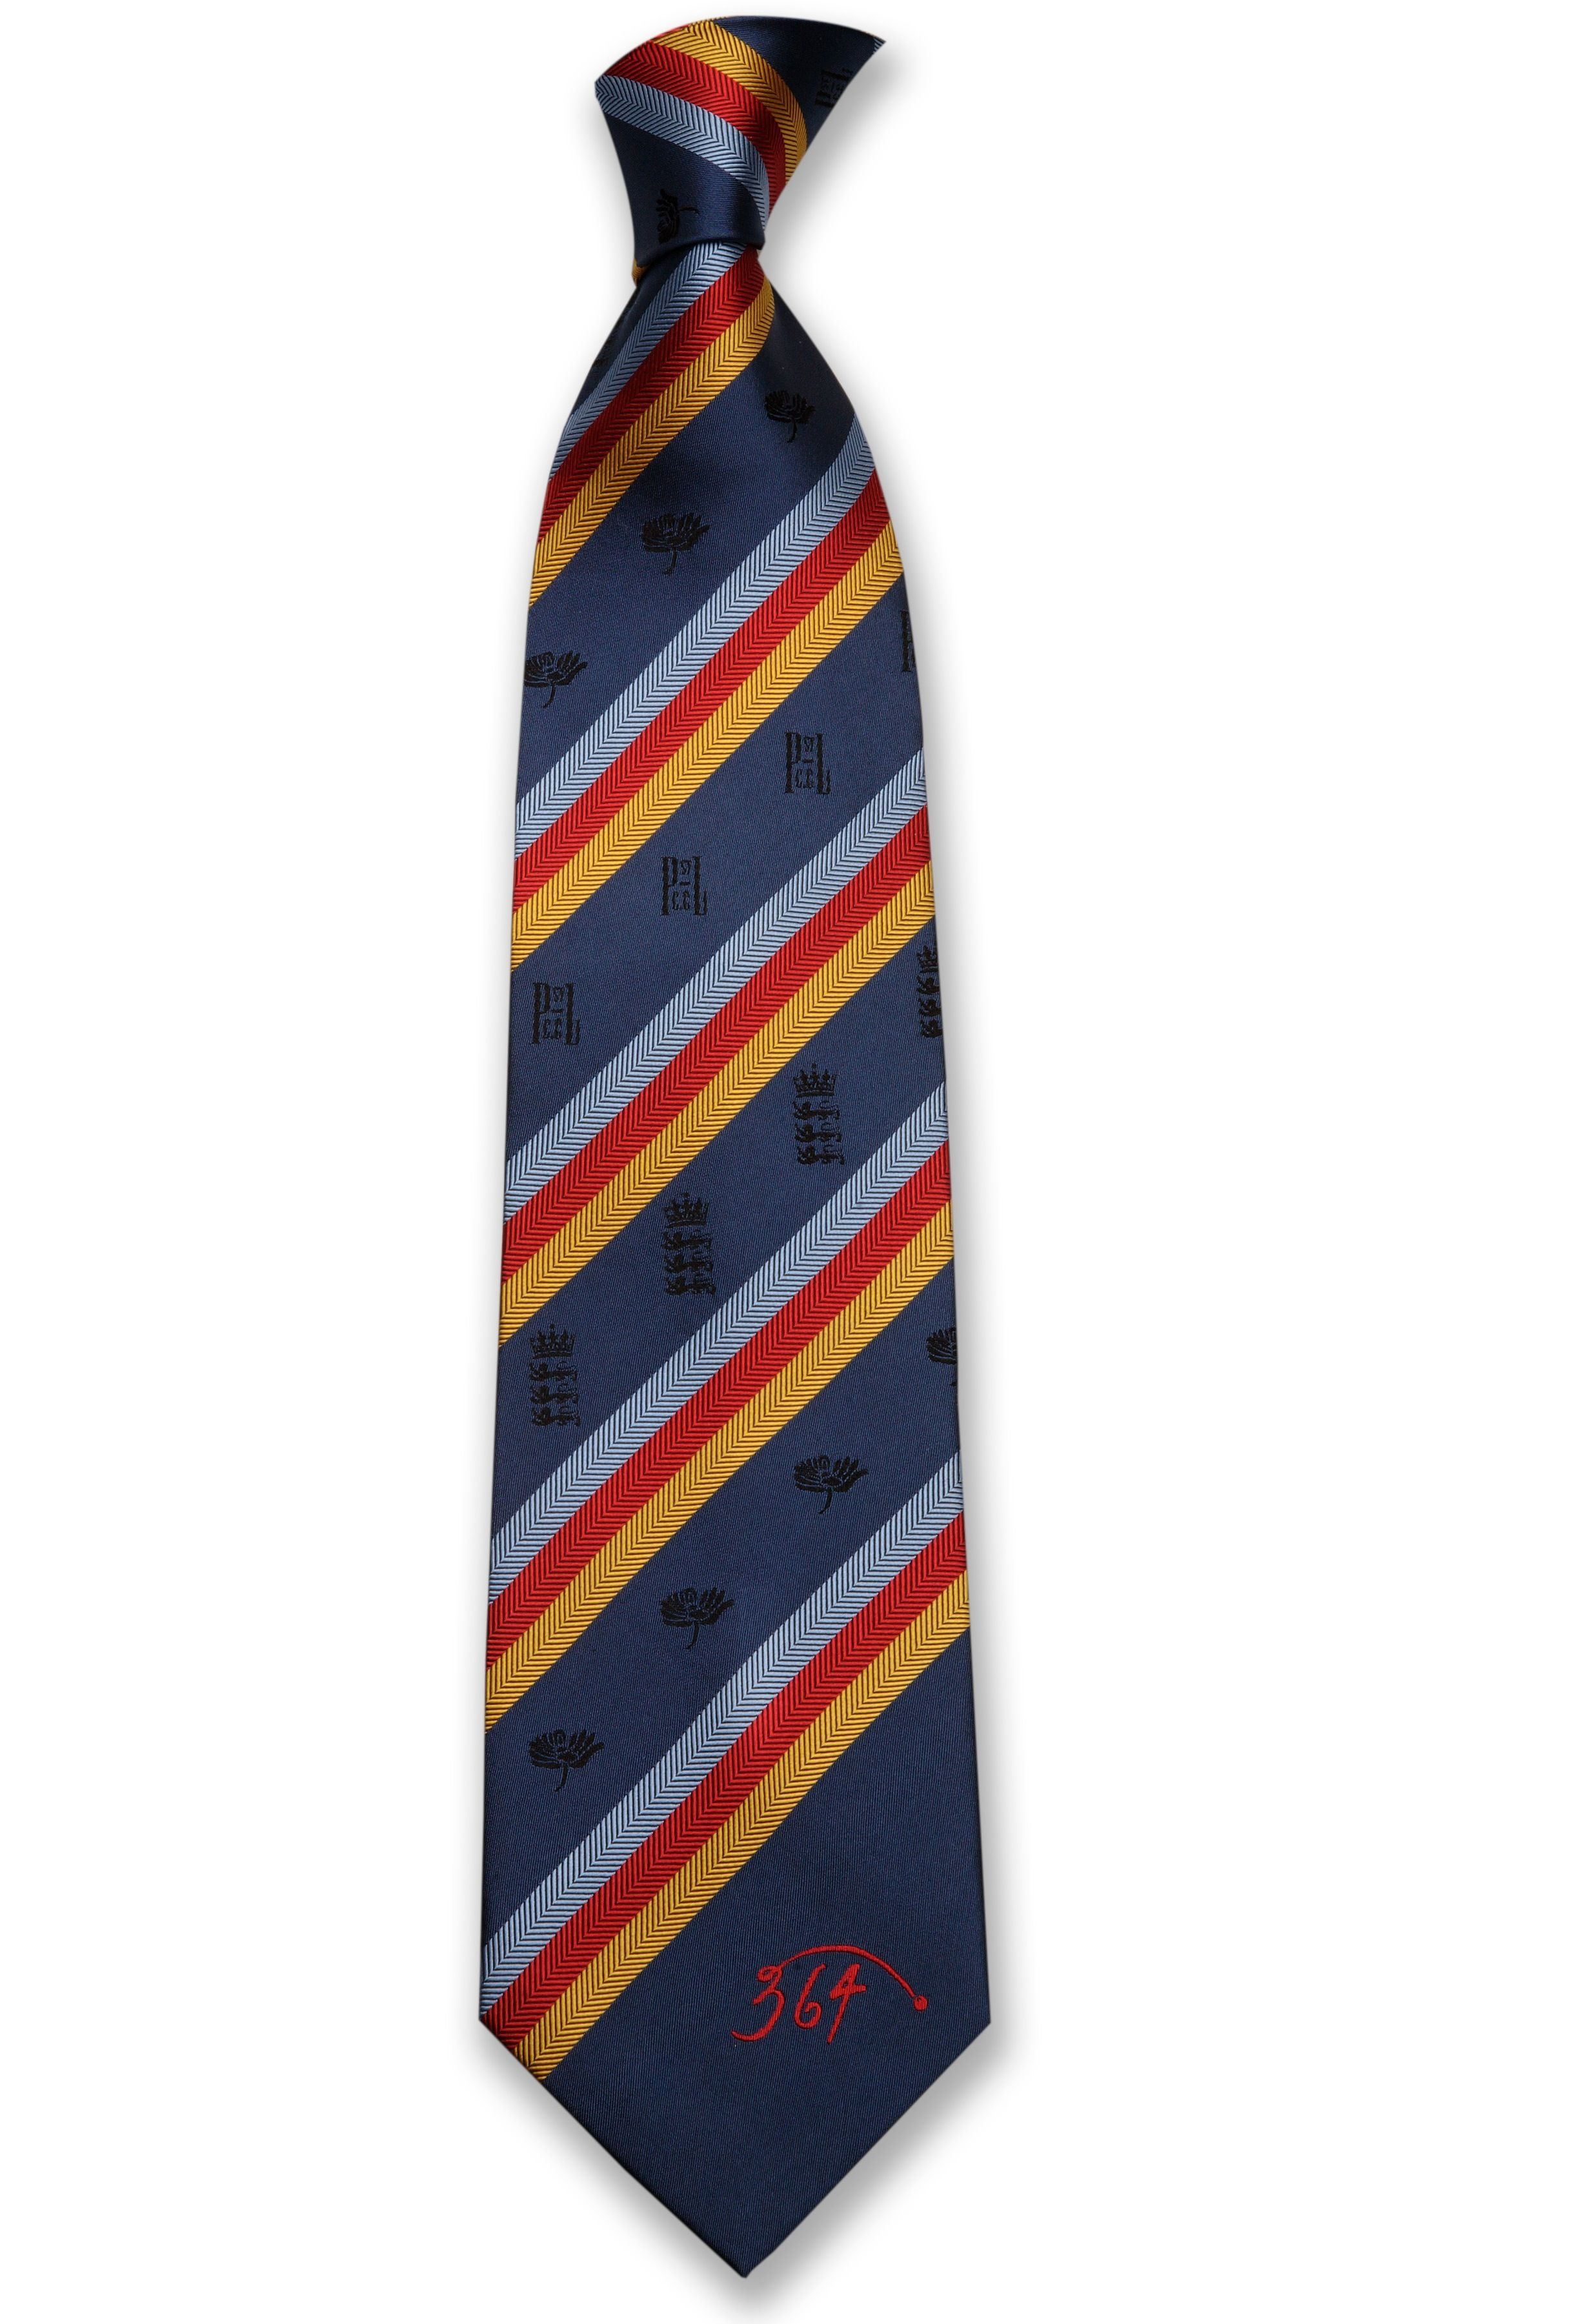 How to Choose a Tie for a Gift